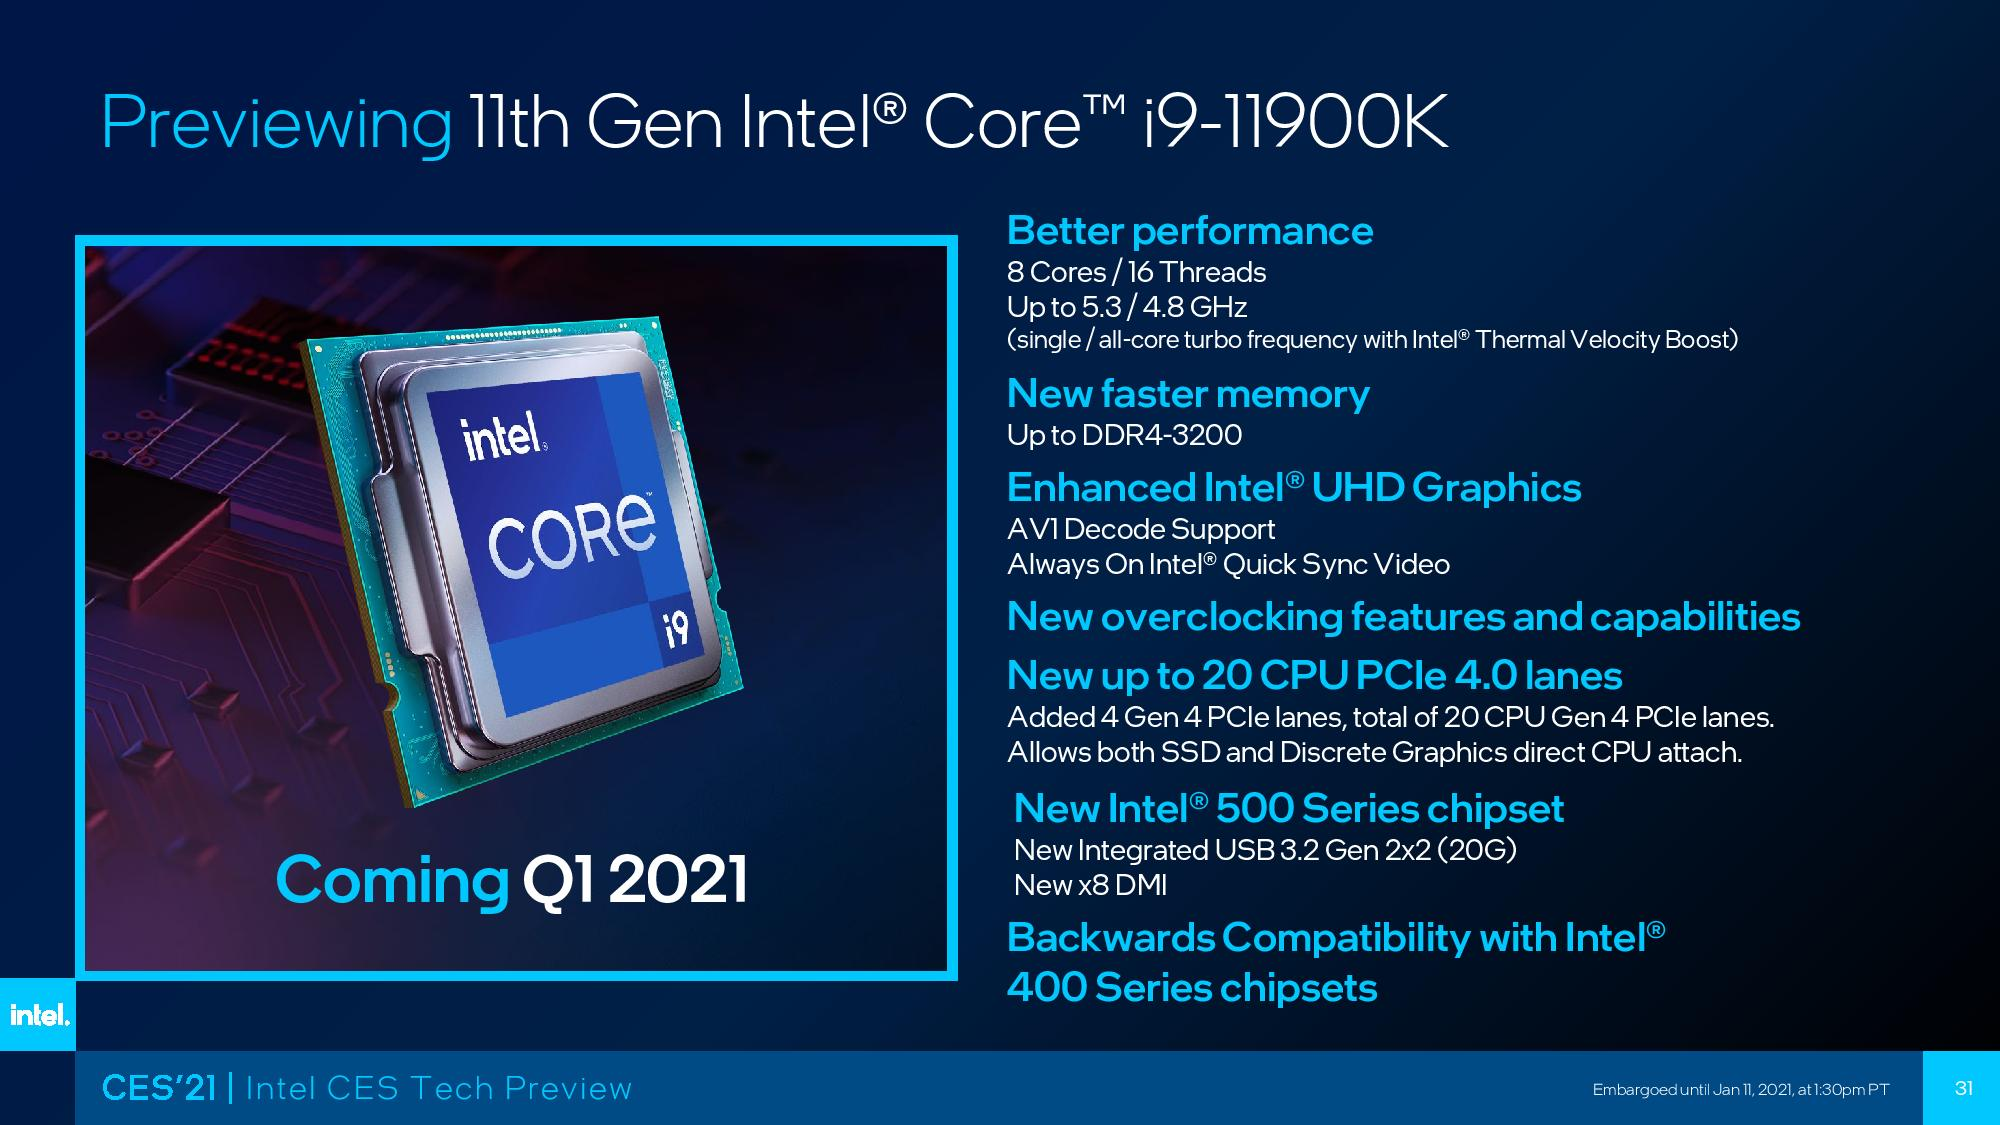 Intel Previews Core i9-11900k 'Rocket Lake' Flagship CPU At CES 2021, 19%  IPC Up Lift, 50% More iGPU Performance And PCIe 4.0 Support!